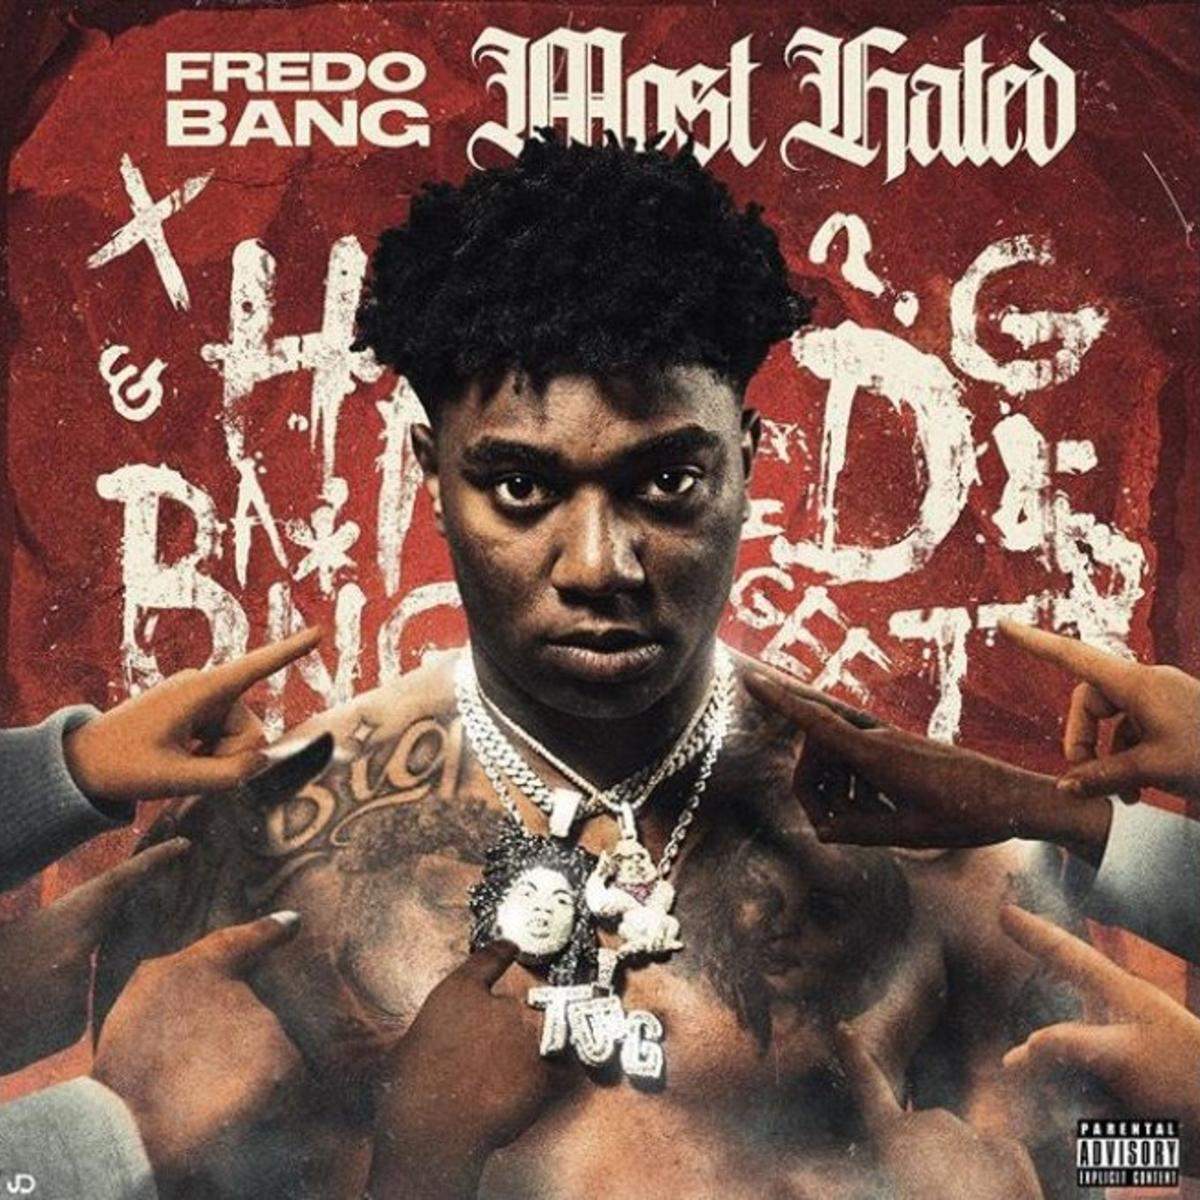 Fredo Bang Explains His Trust Issues On Most Hated Single